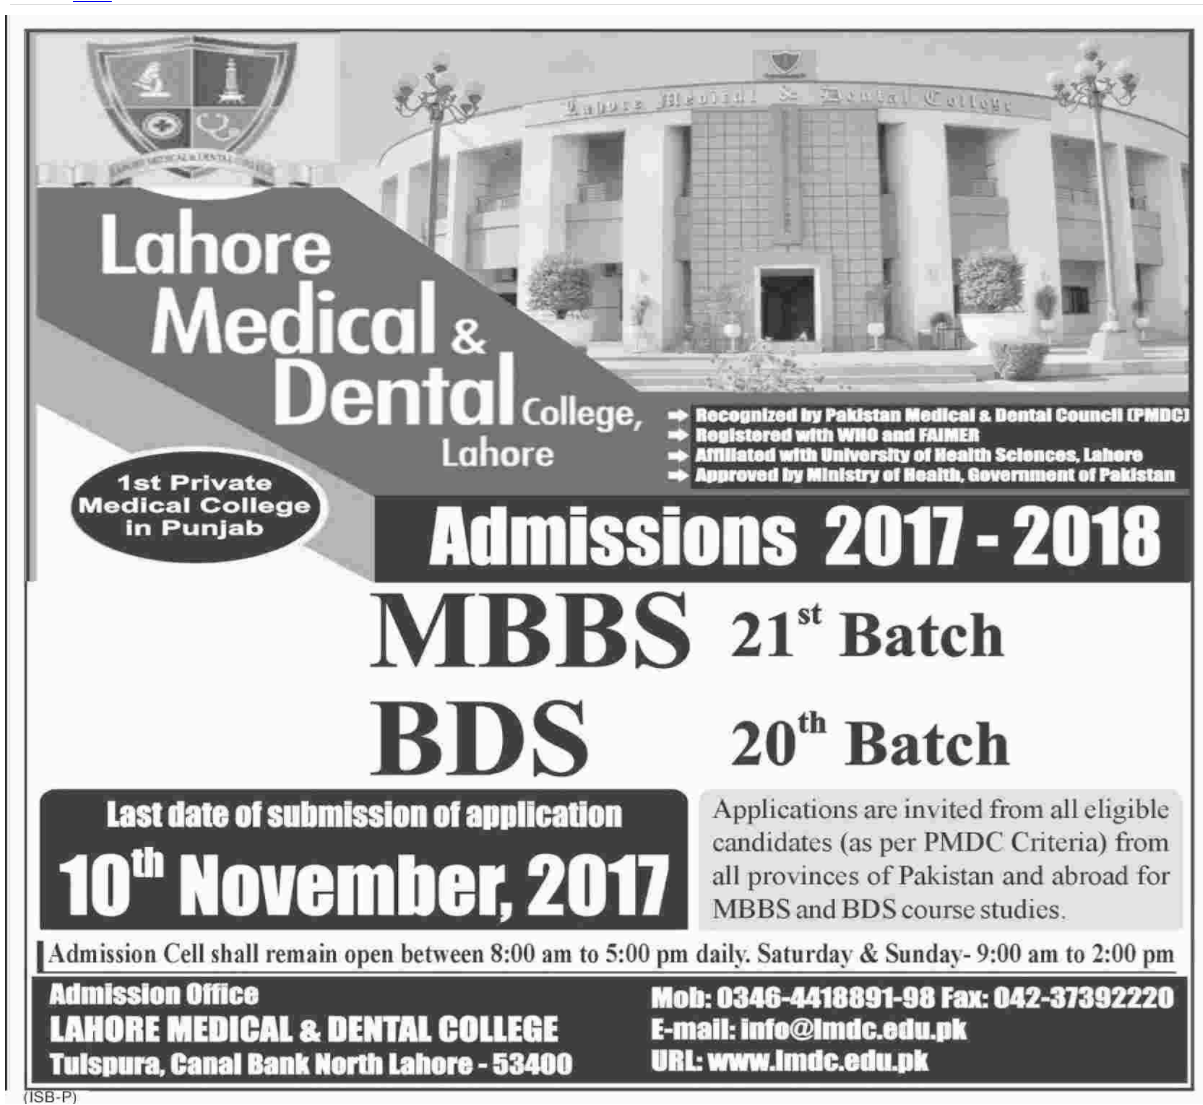 Lahore Medical & Dental College, Lahore (MBBS & BDS) Admissions 2017 – 18